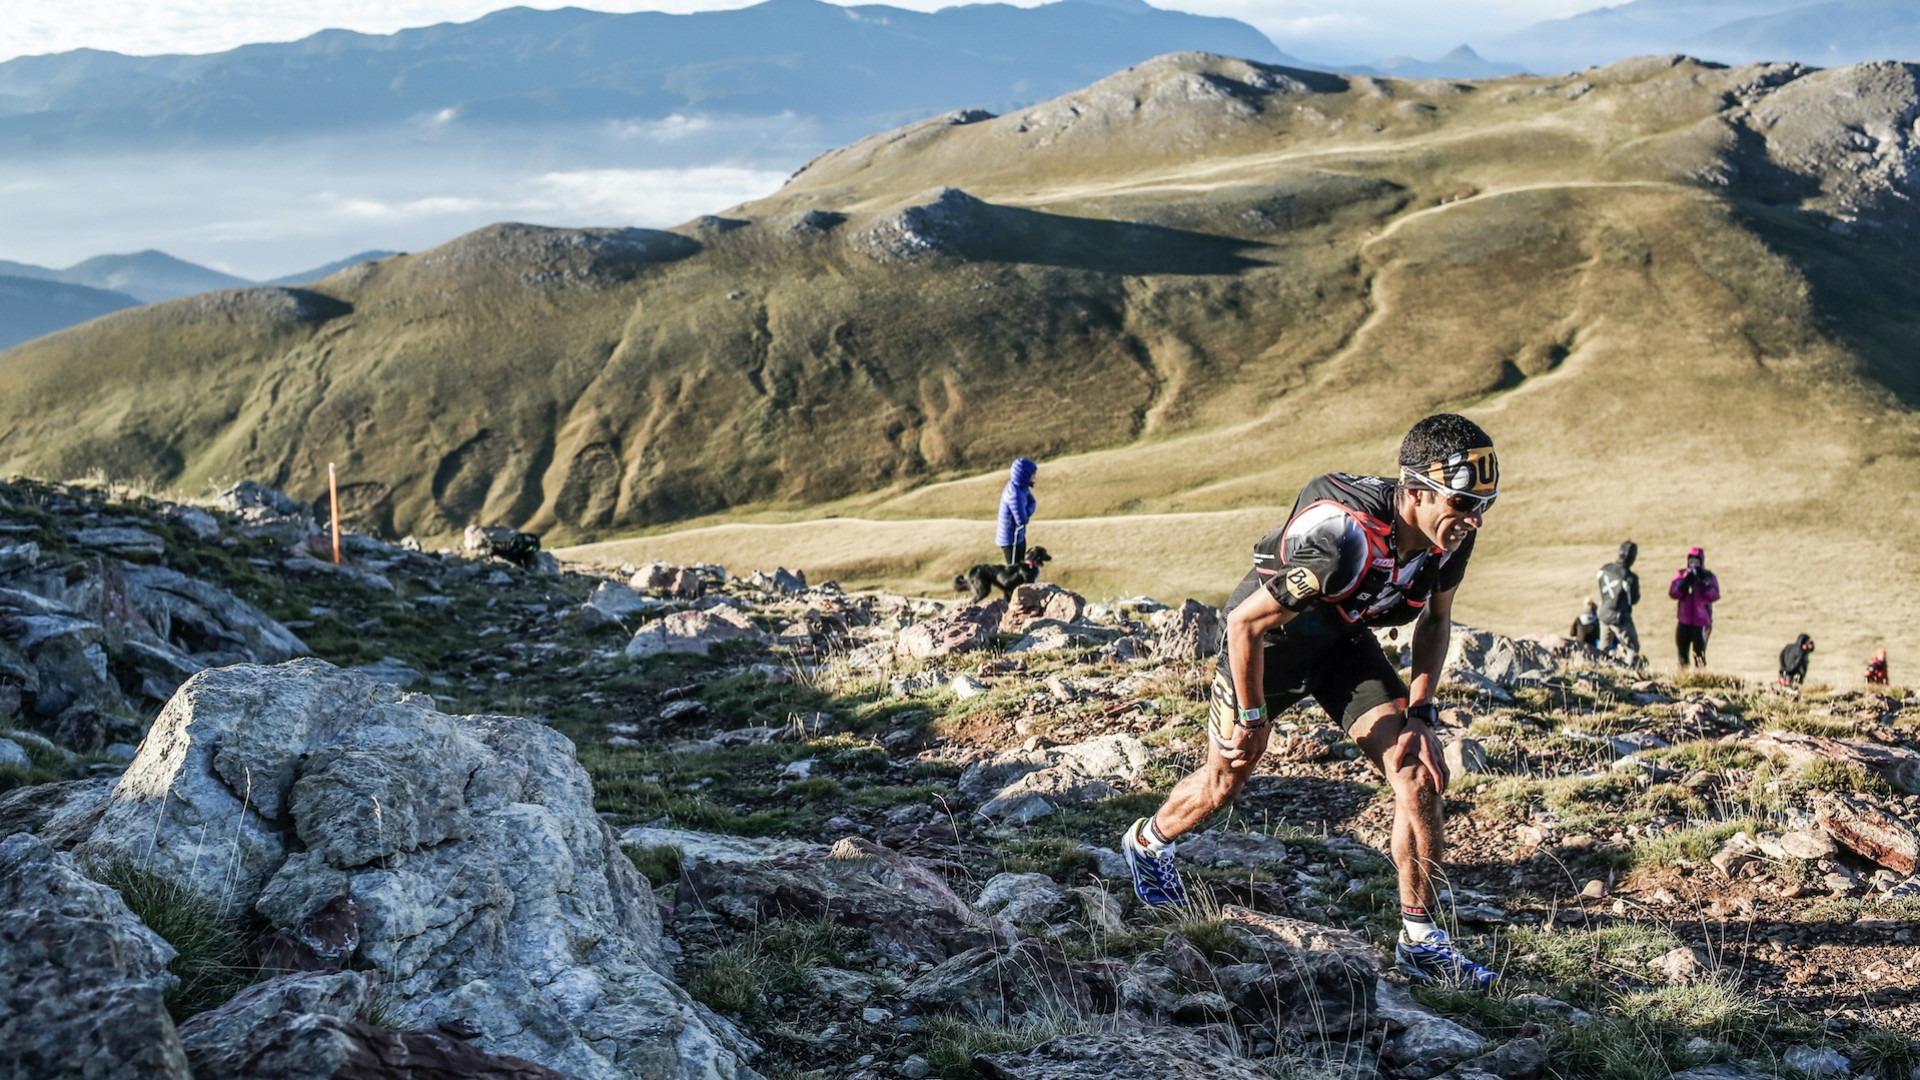 Runner taking on the Ultra Pirineu race in Spain